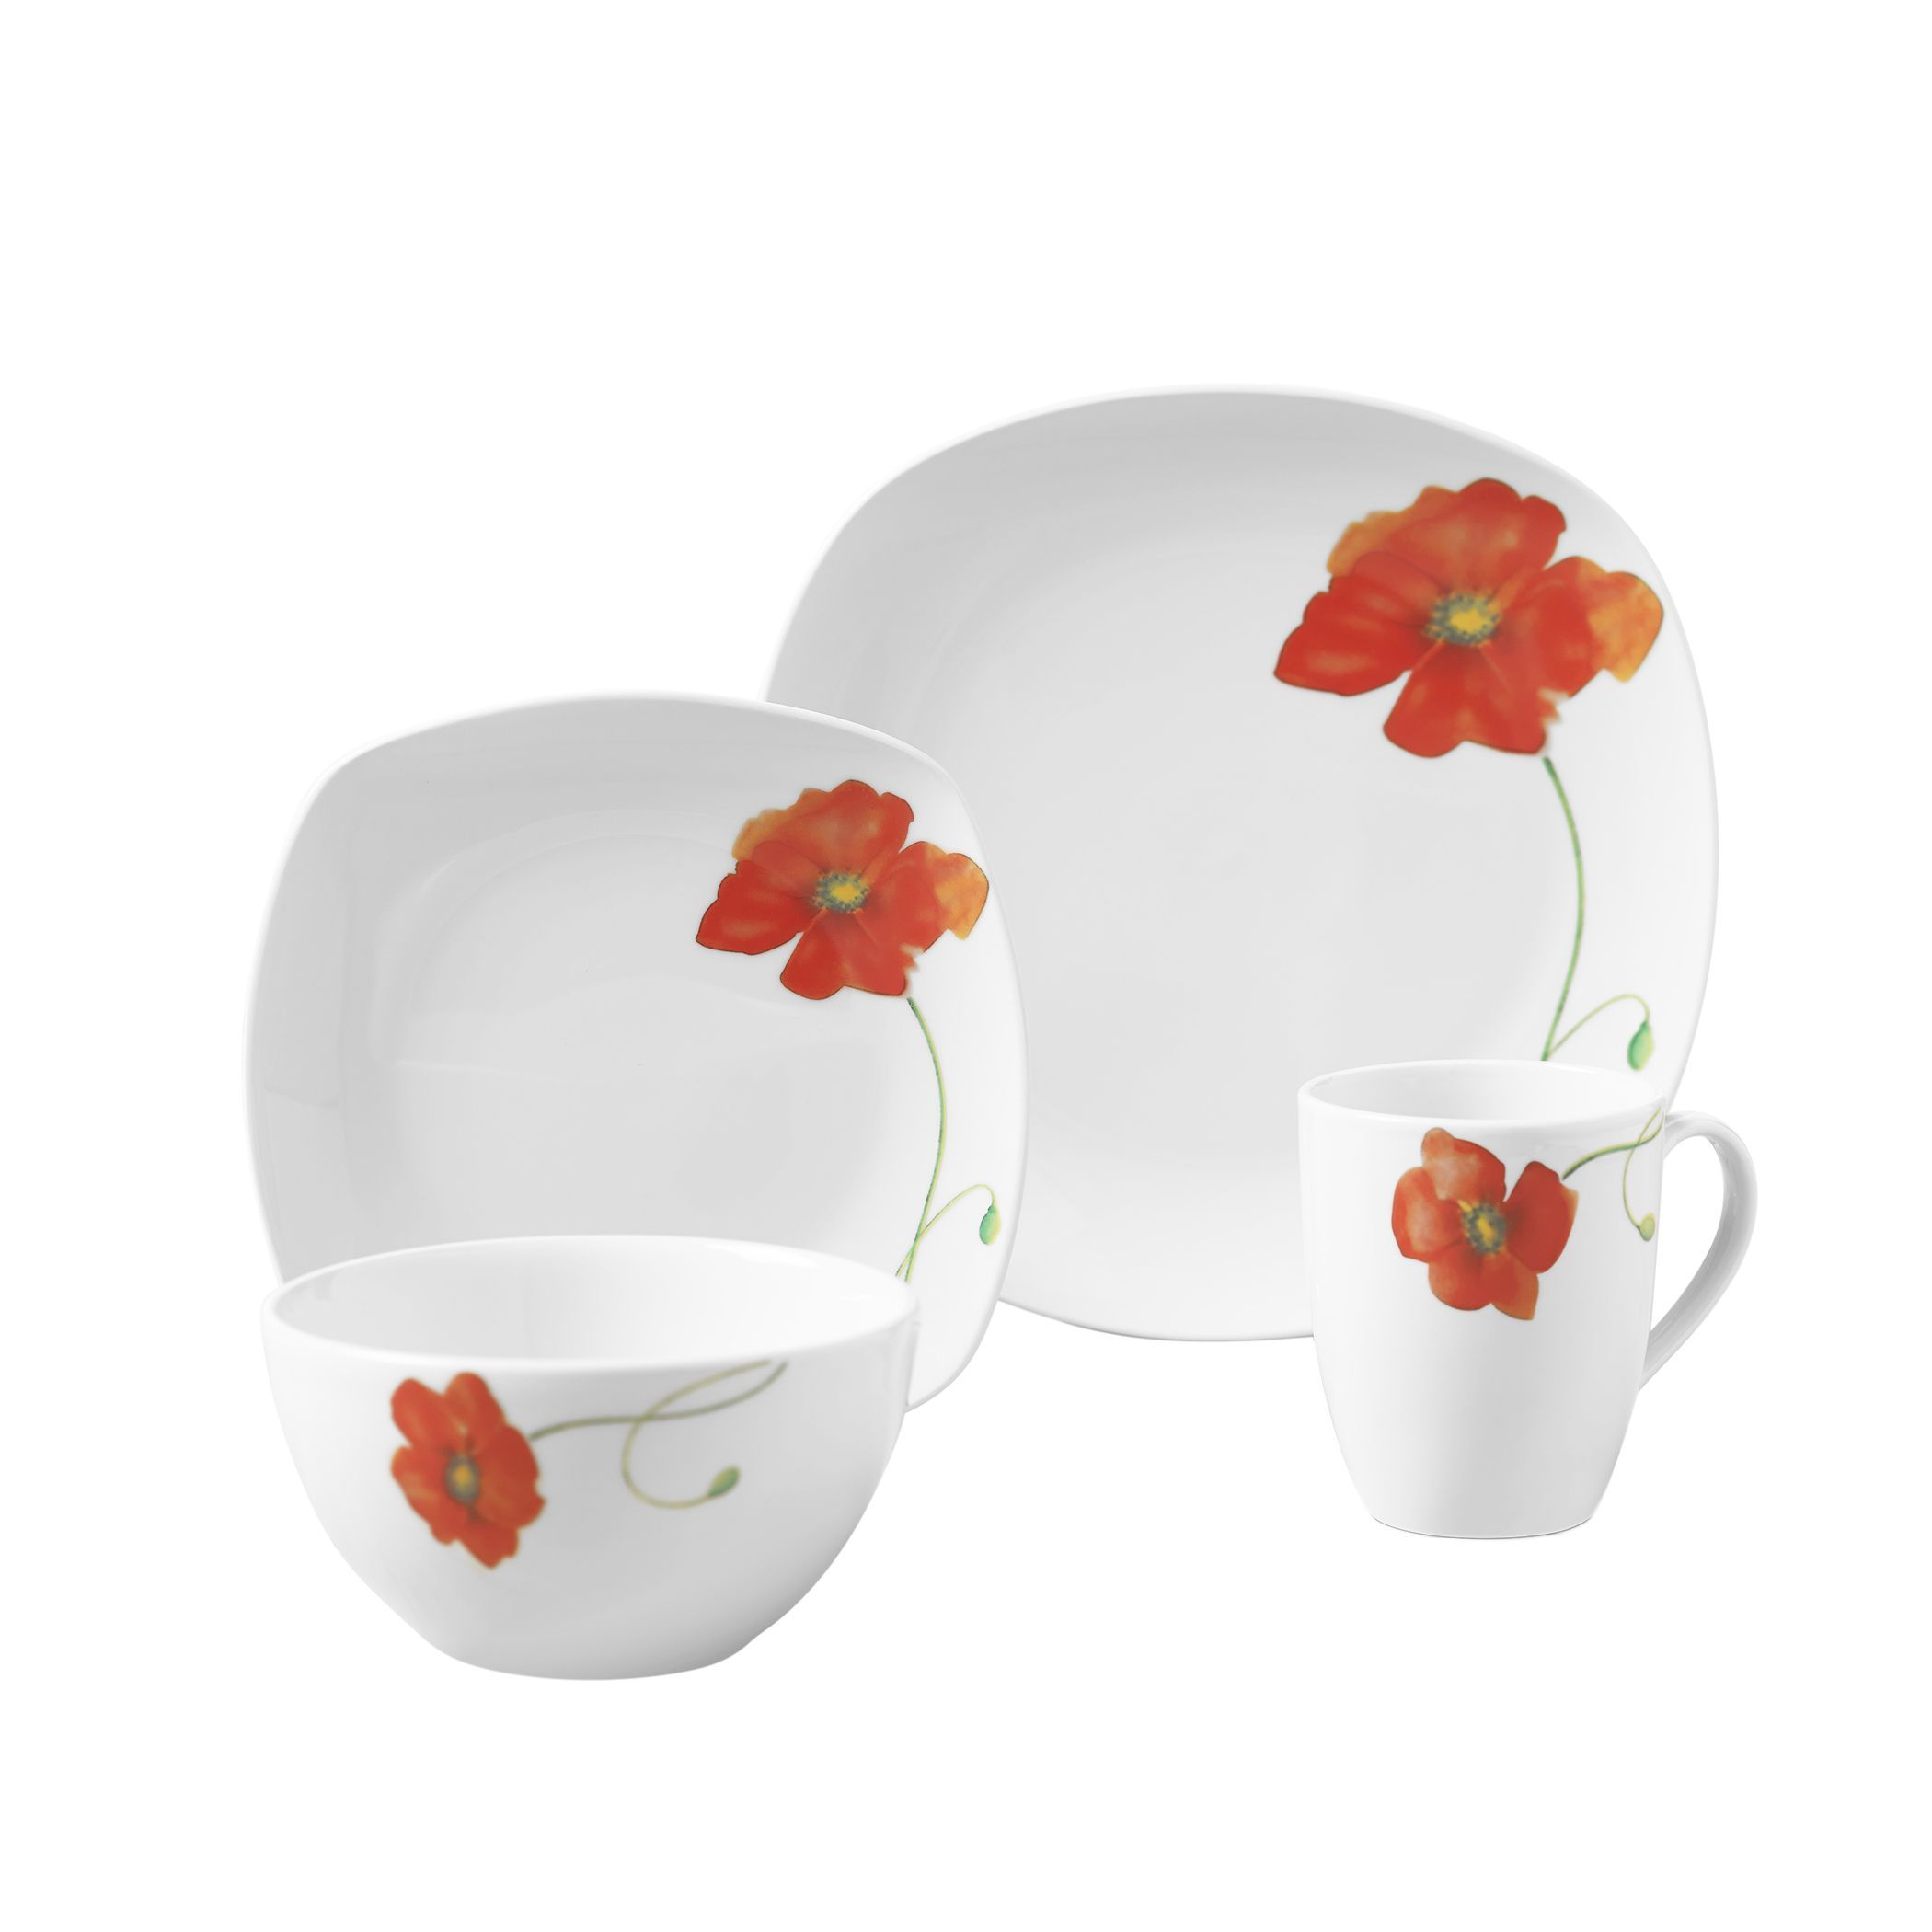 Tabletops Unlimited Palermo 16pc Soft Square Porcelain Dinnerware ...